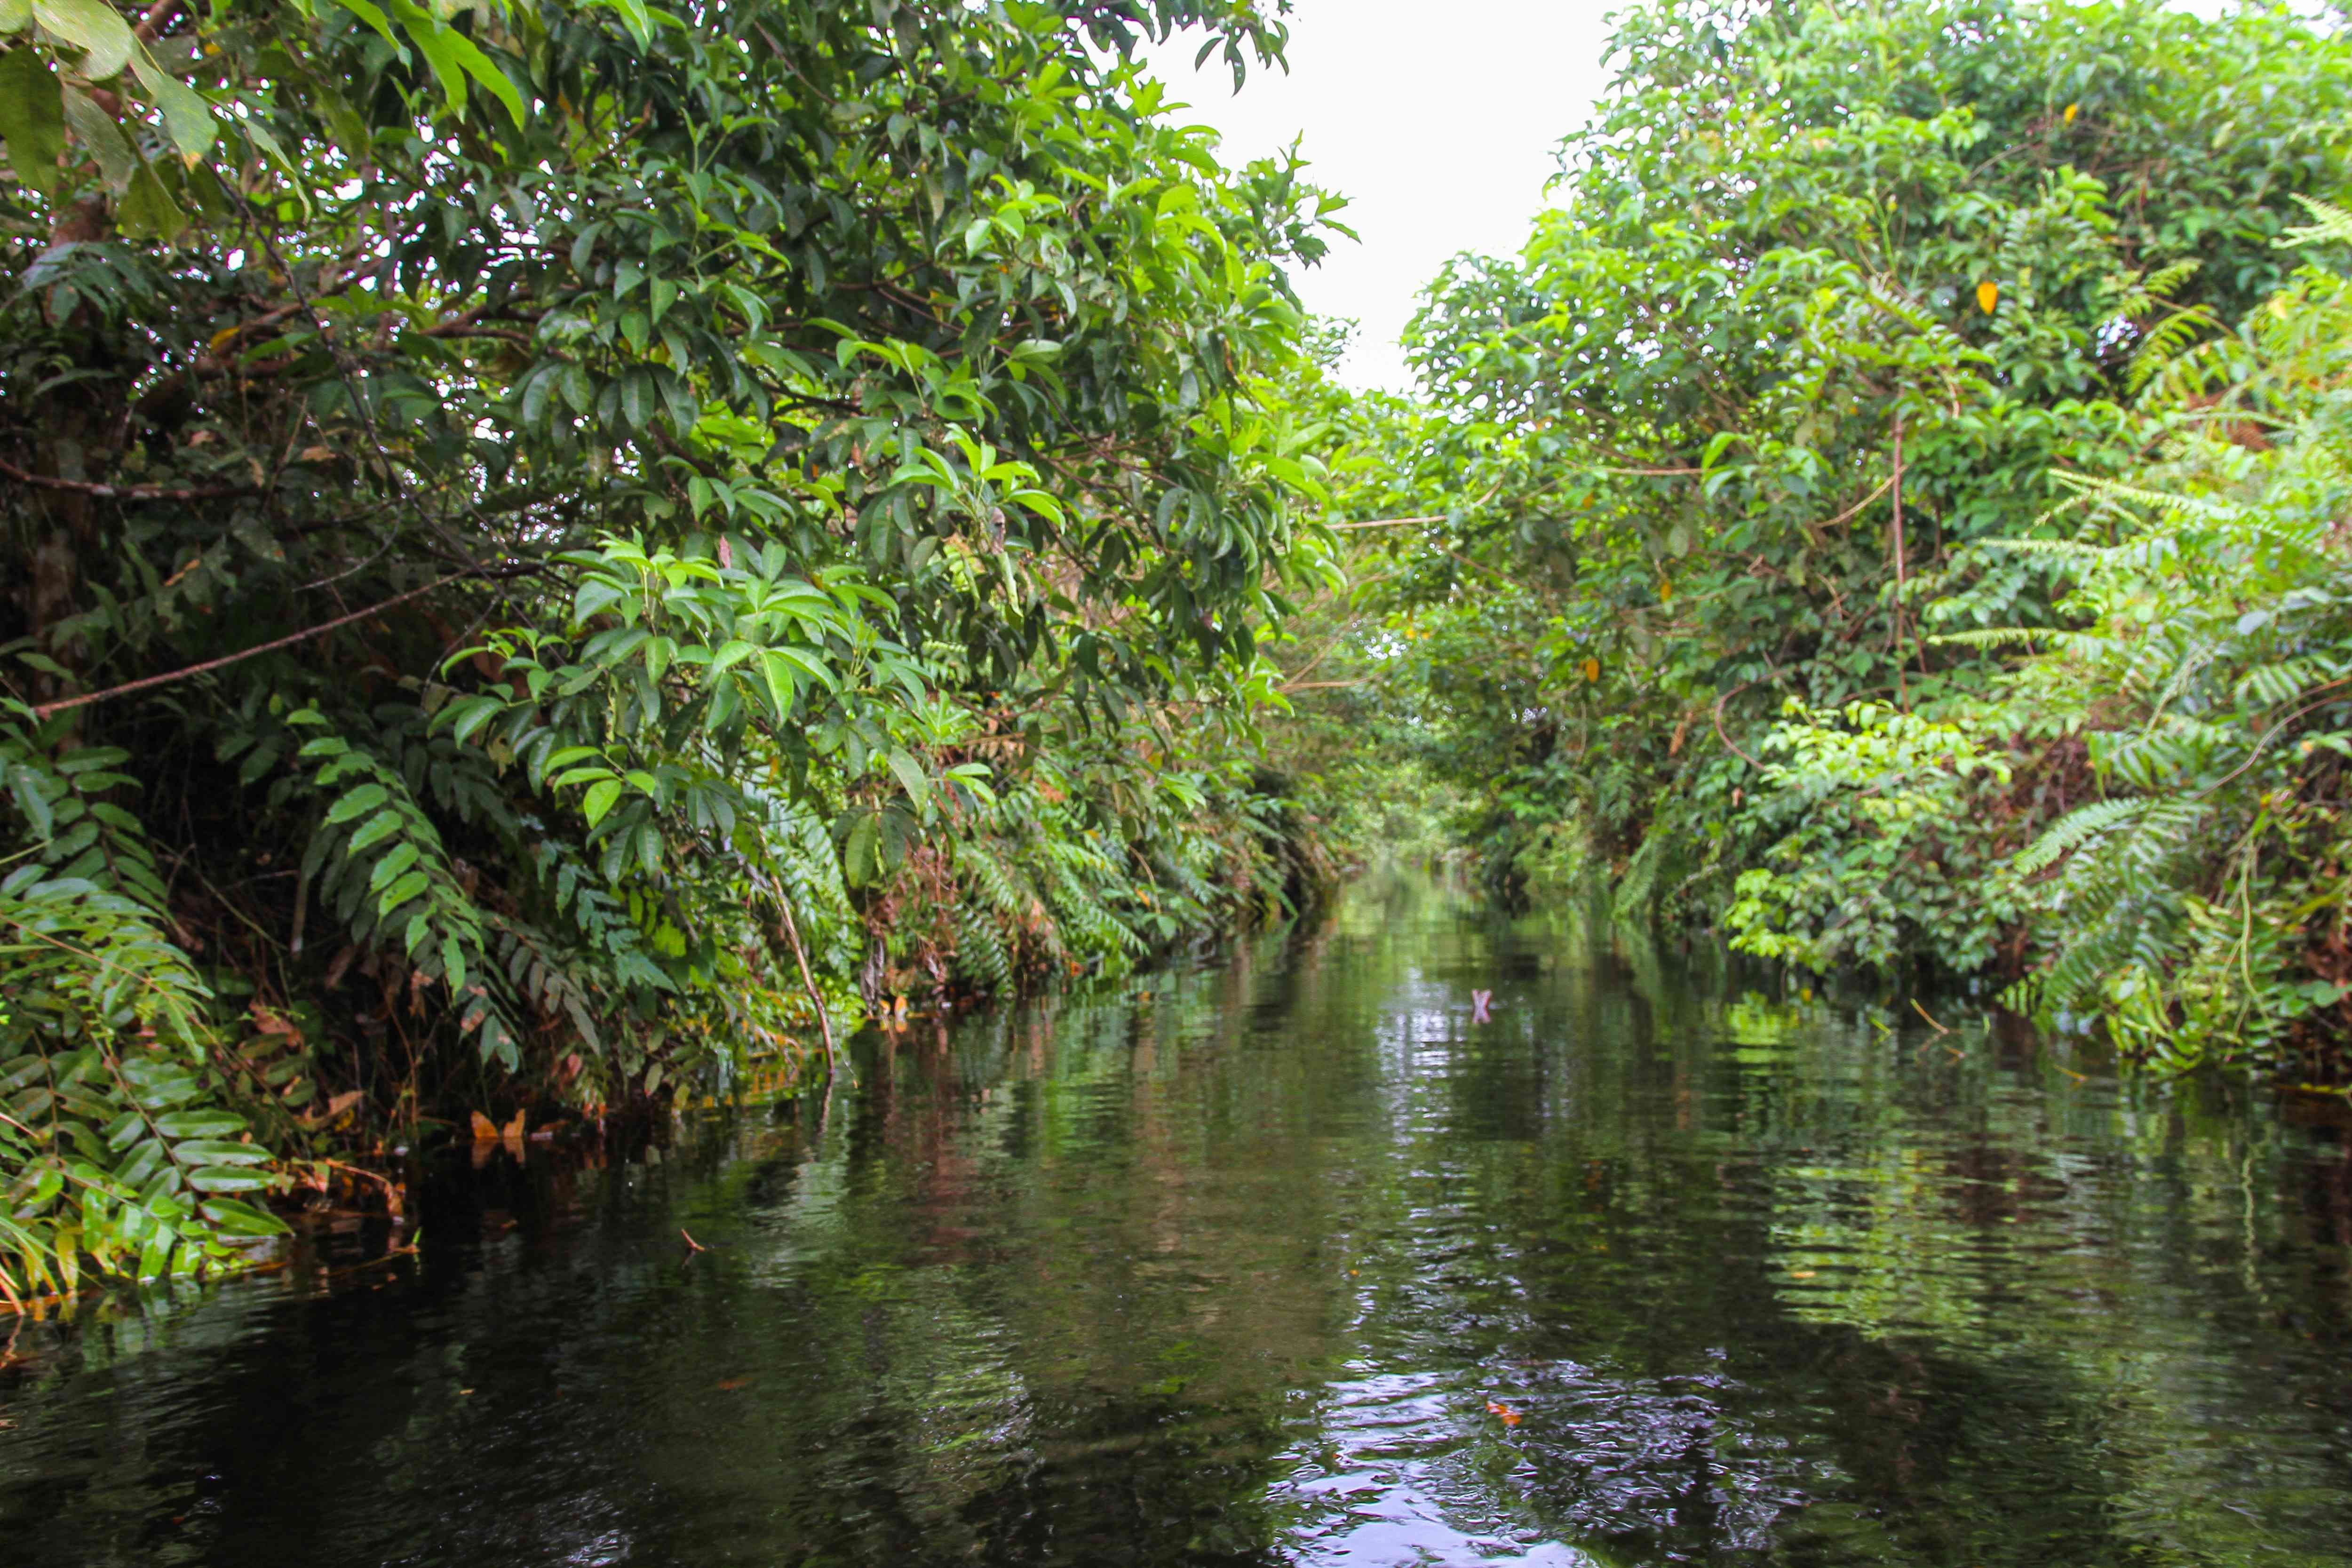 River in a swampy national park in Sumatra